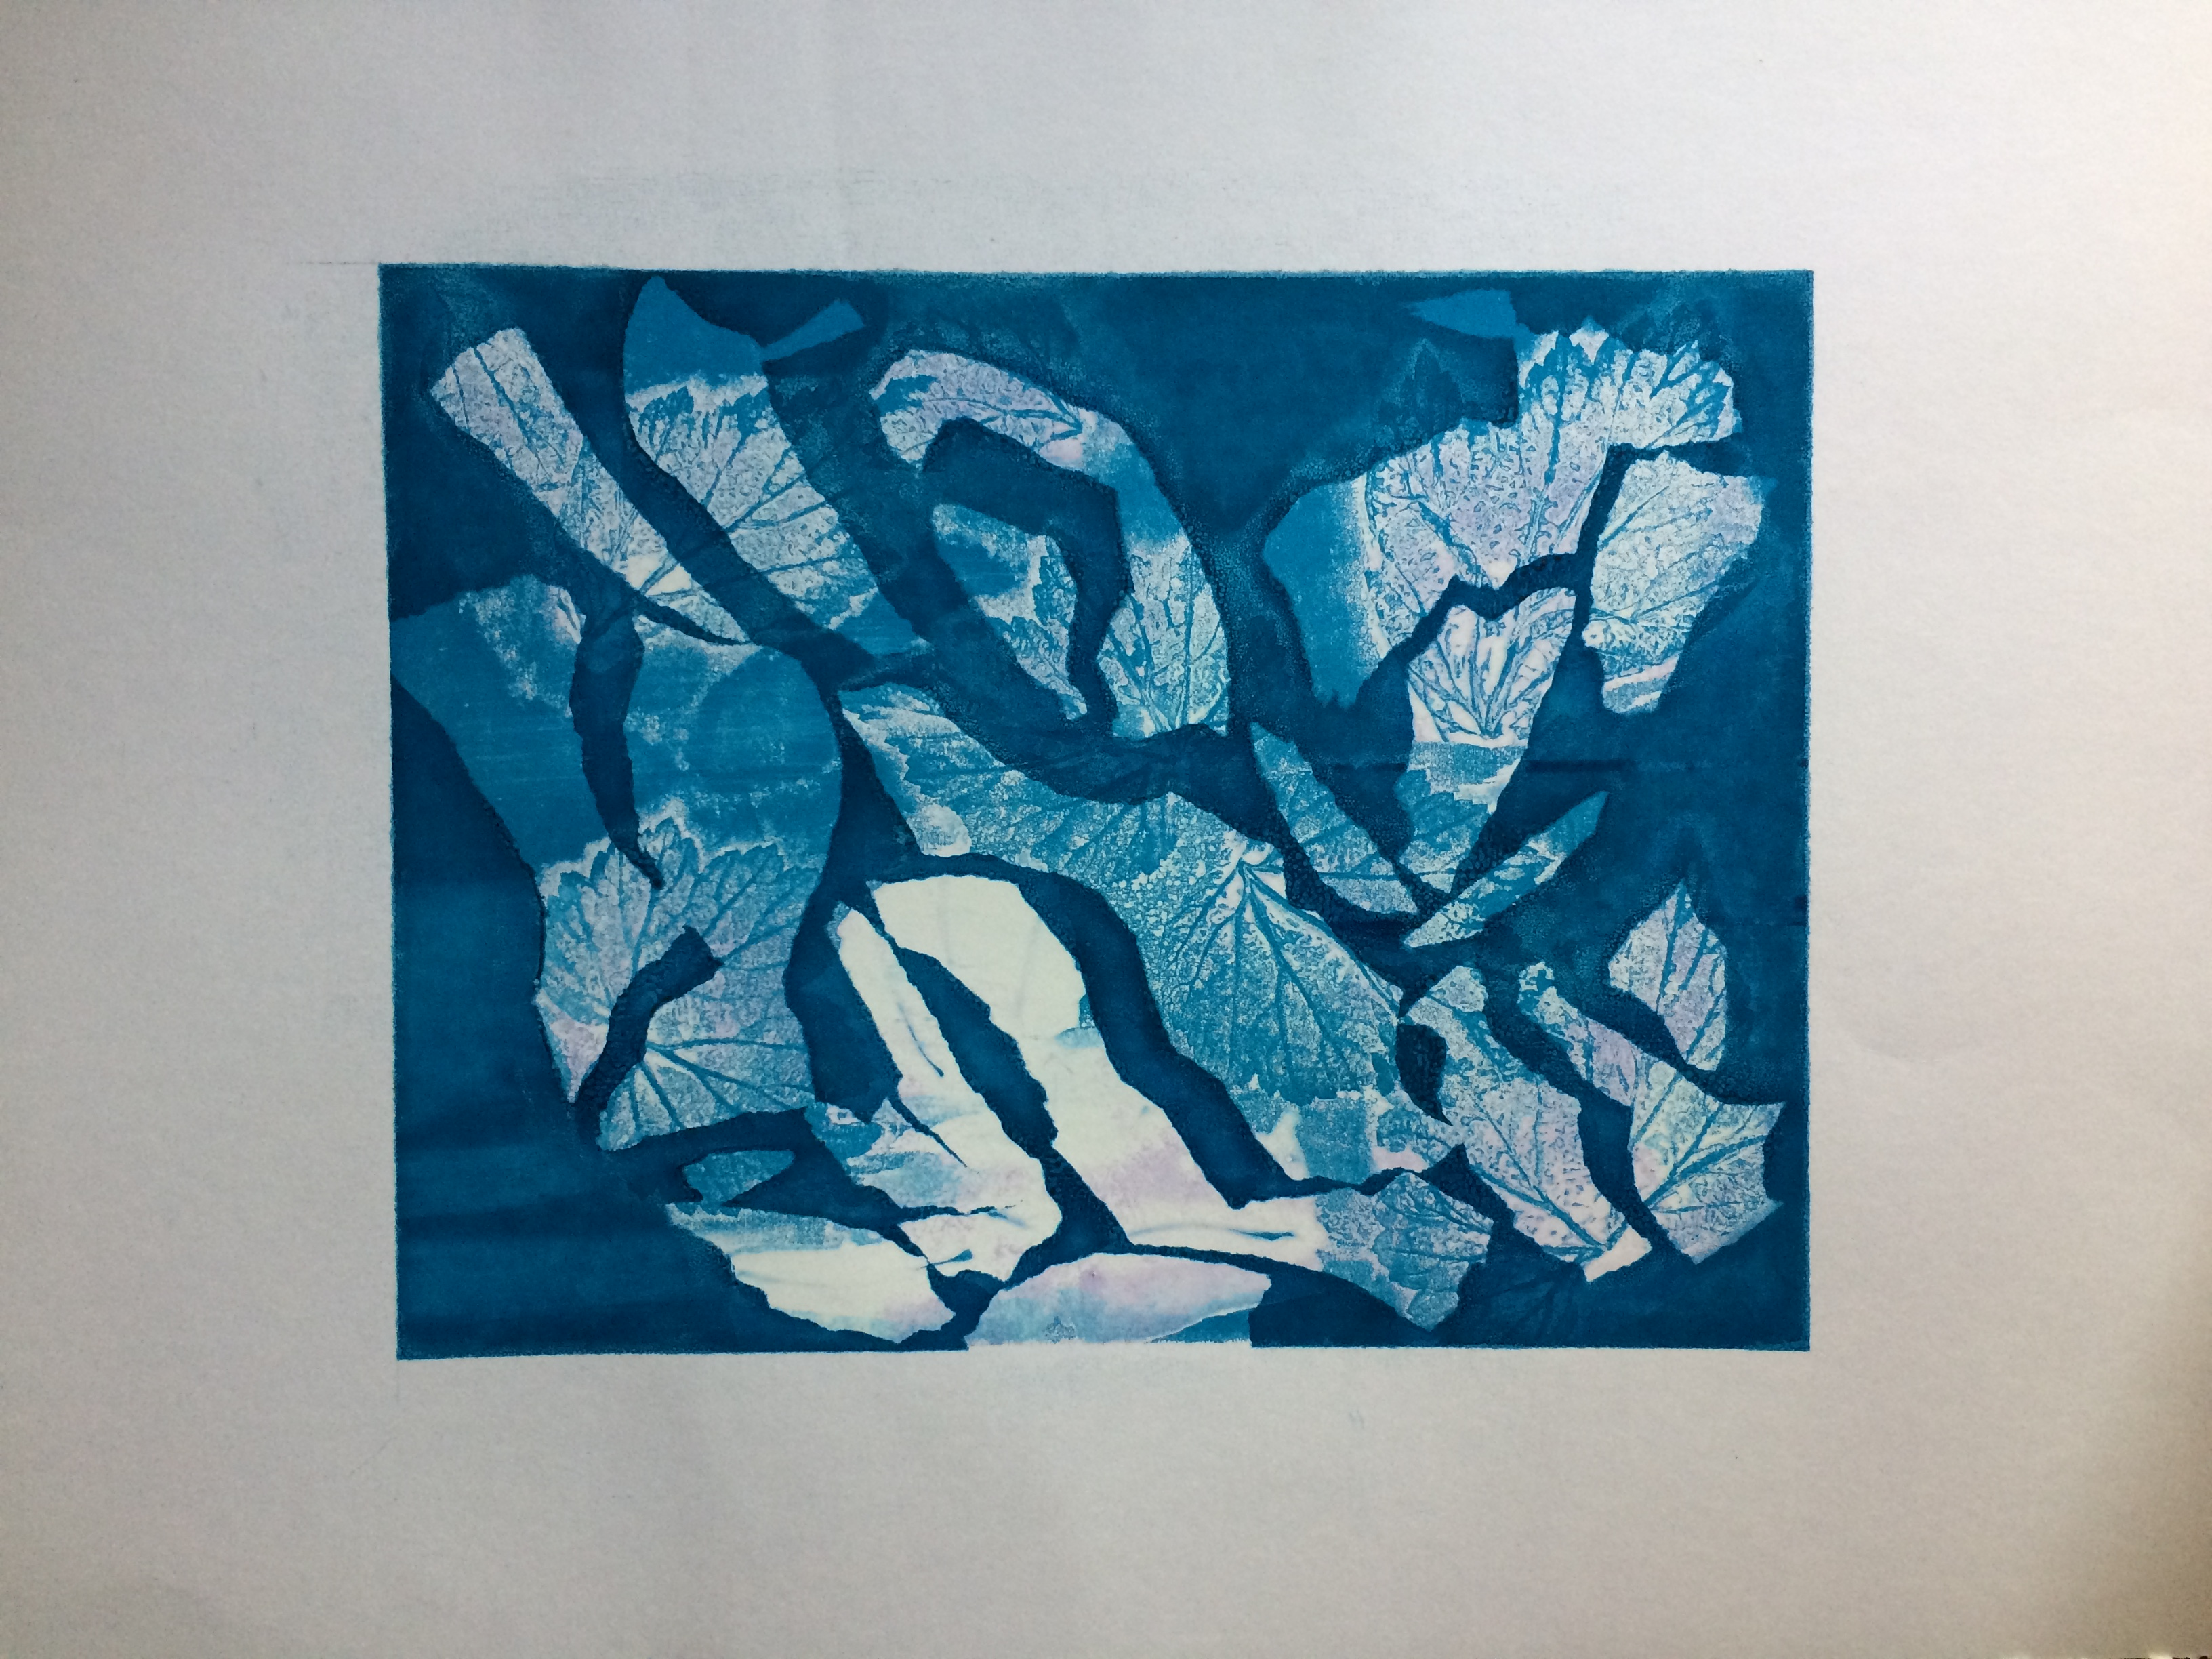 067 Blue Leaves  40 x 30